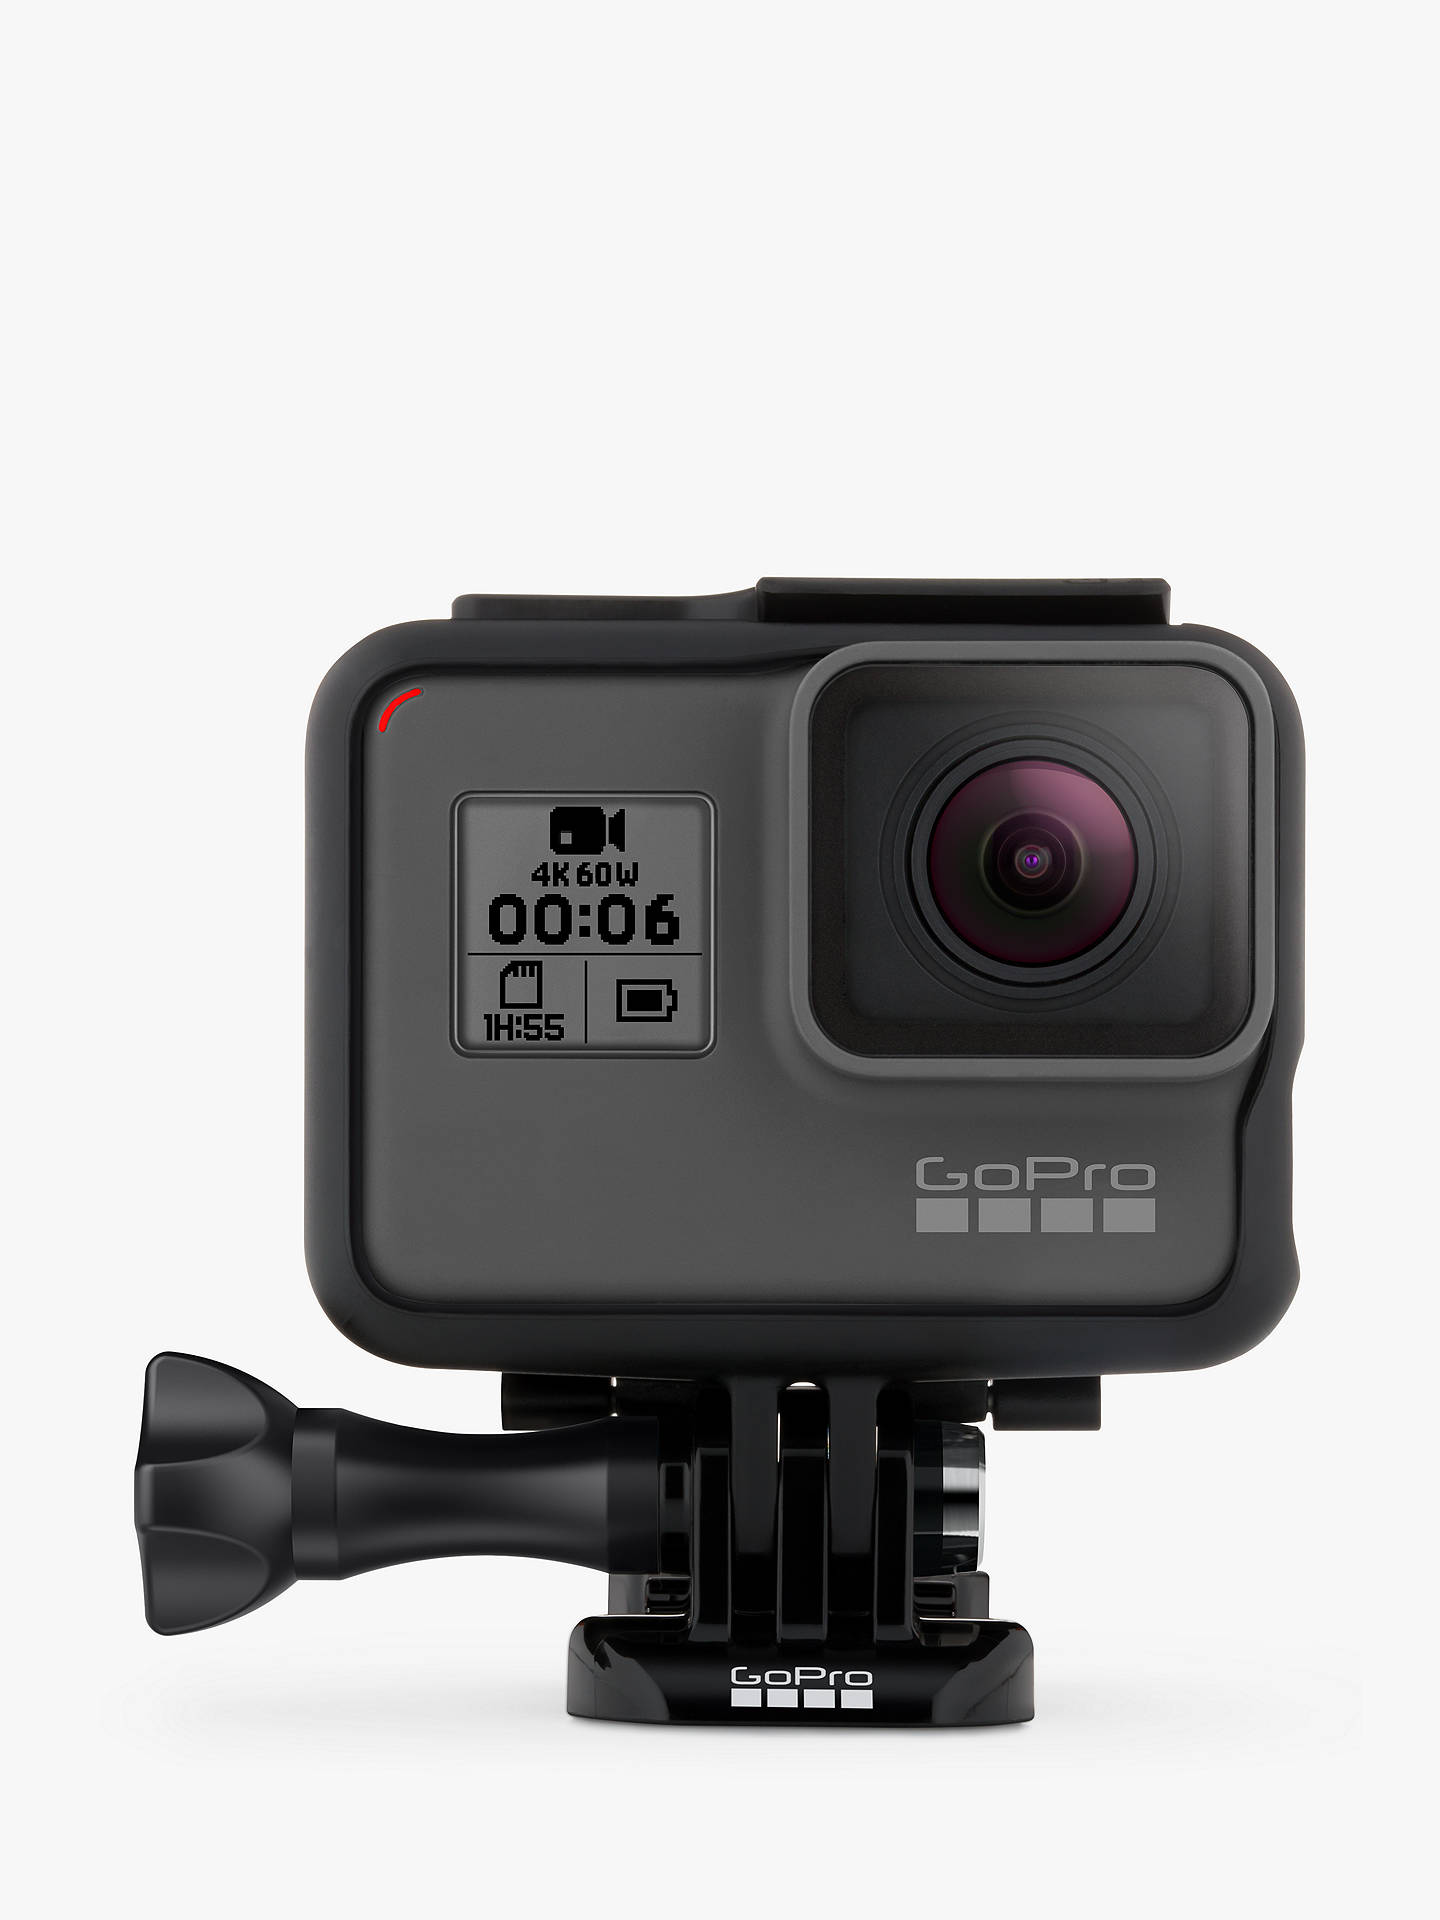 BuyGoPro HERO6 Black Edition Camcorder, 4K Ultra HD, 60 FPS, 12MP, Wi-Fi, Waterproof, GPS Online at johnlewis.com